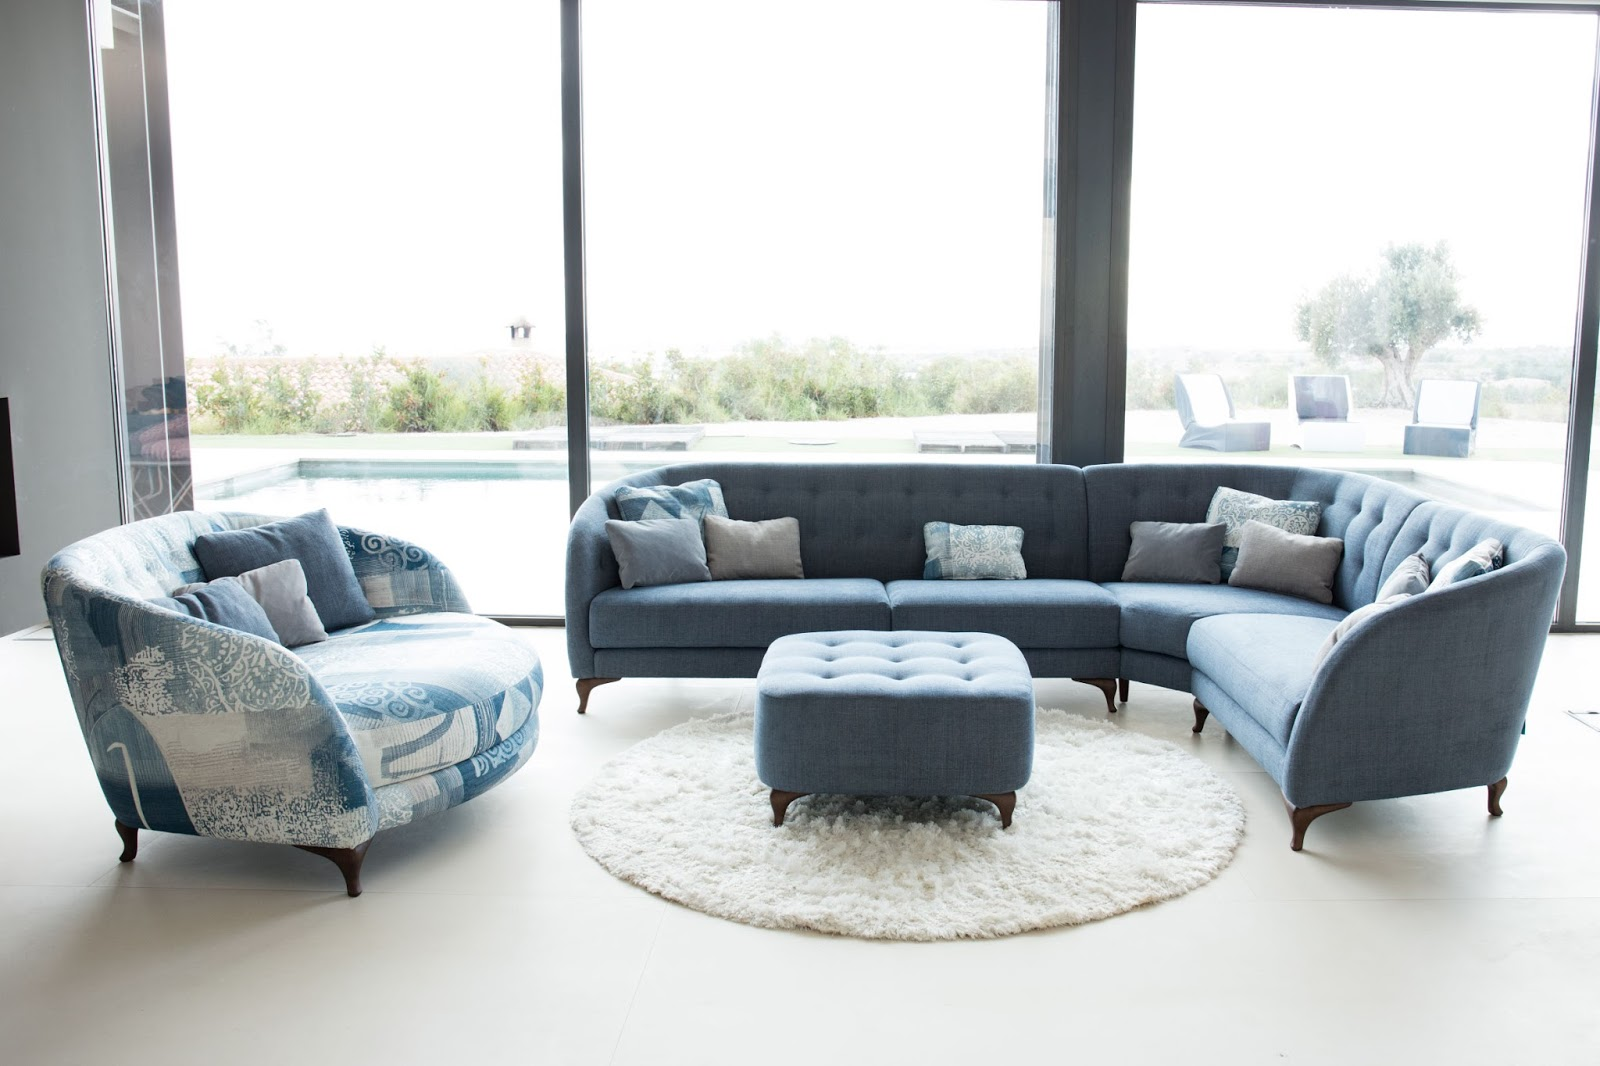 Dieses Sectional Sofa (below) By Natuzzi Is Compact And Ideal For Apartment  Living. It Features An Adjustable Headrest, Sleek Wooden Legs, And A  Stylish ...